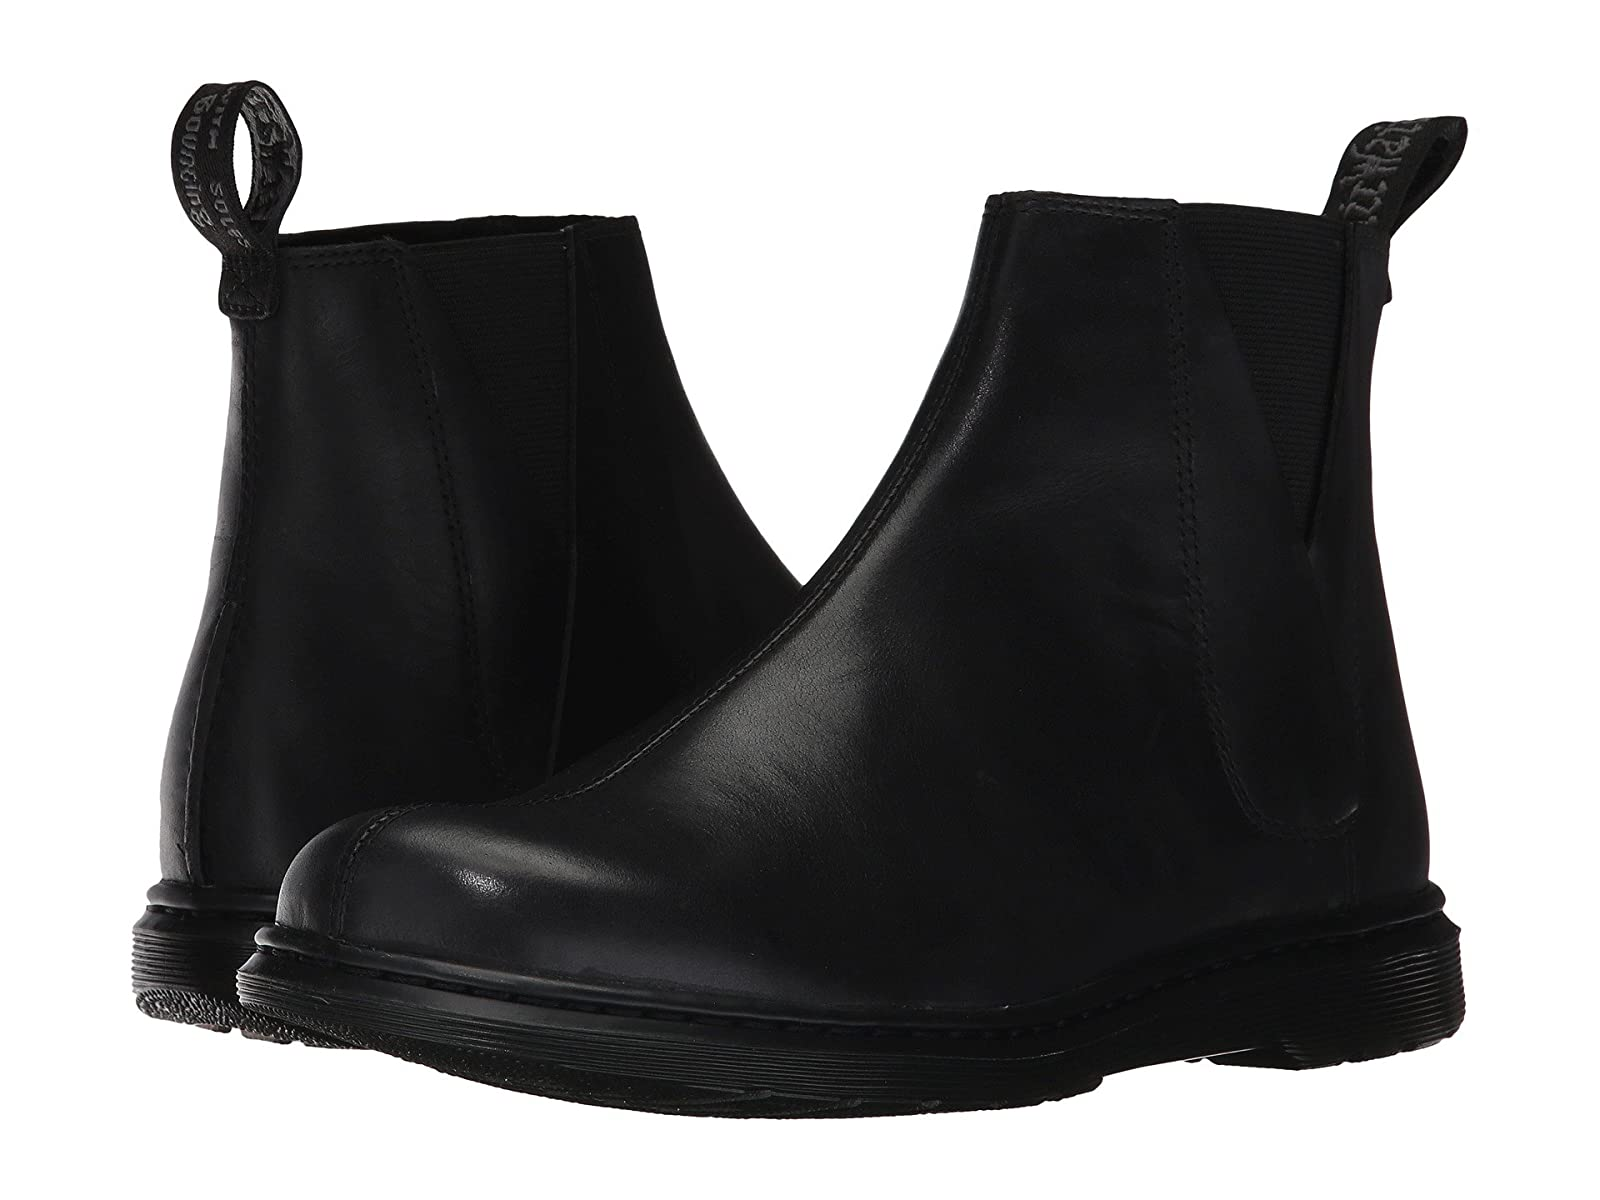 Dr. Martens Noelle Chelsea BootCheap and distinctive eye-catching shoes